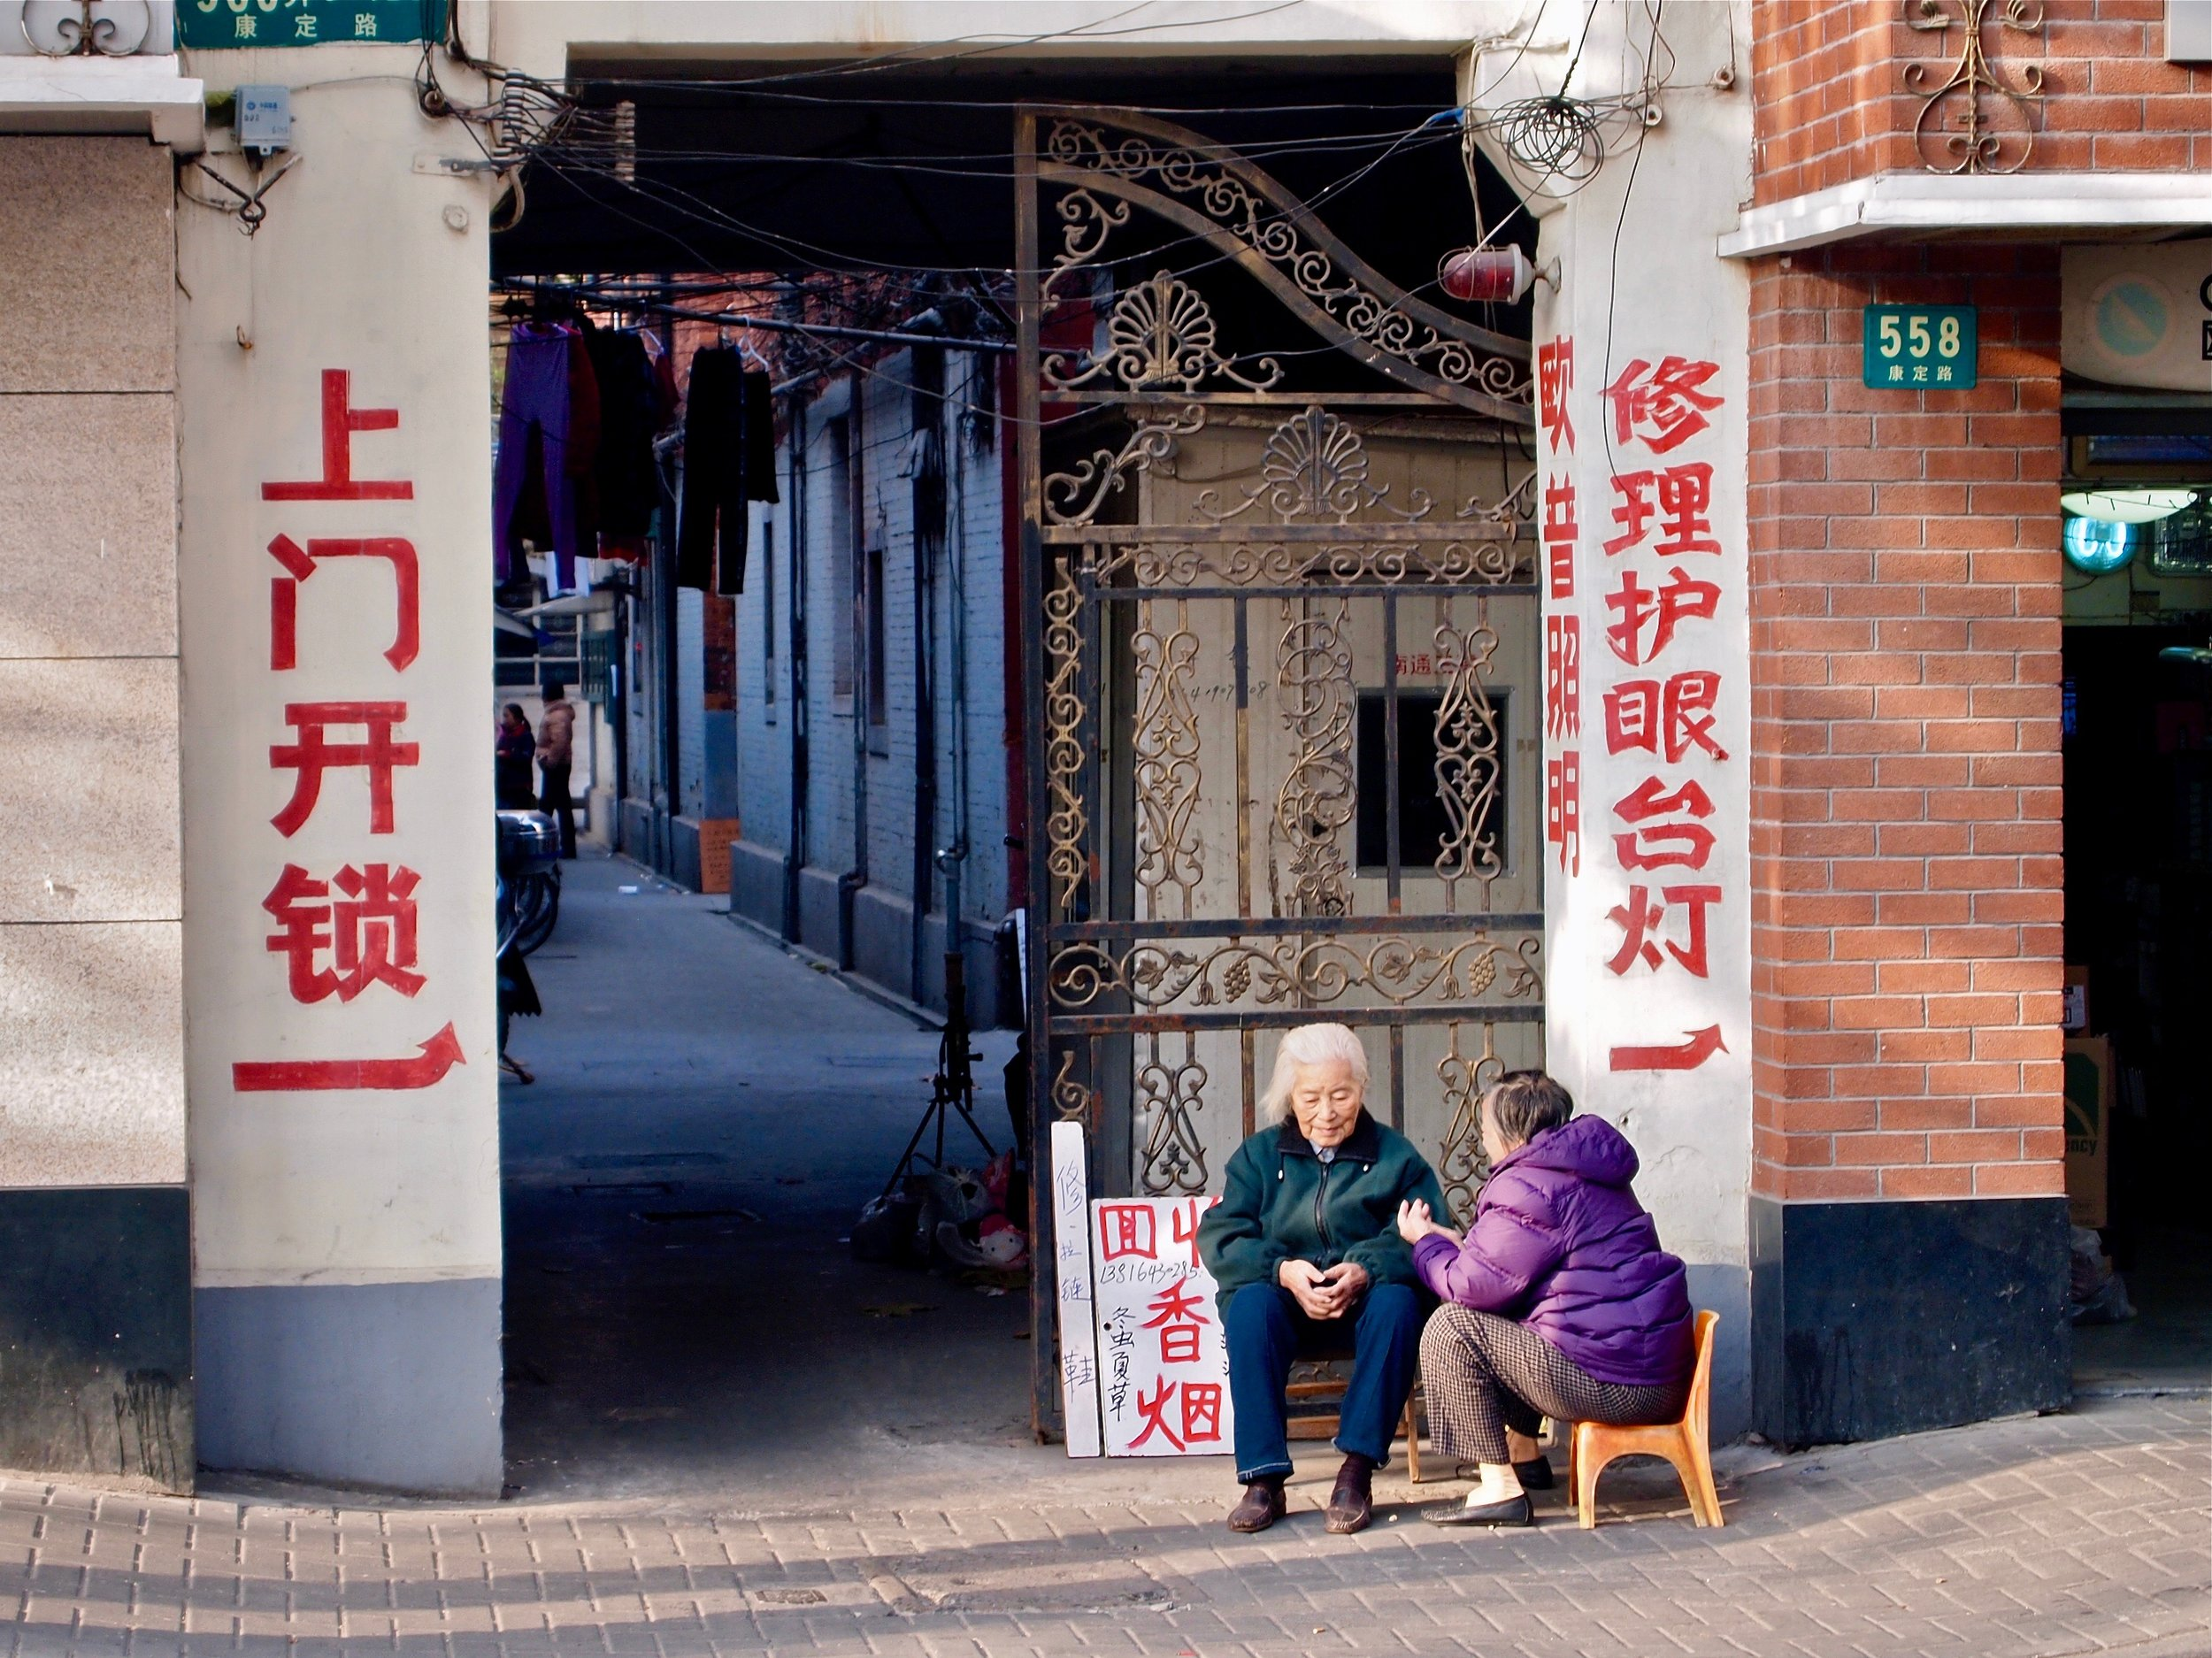 Women on a street in downtown Shanghai, China. (C) Remko Tanis